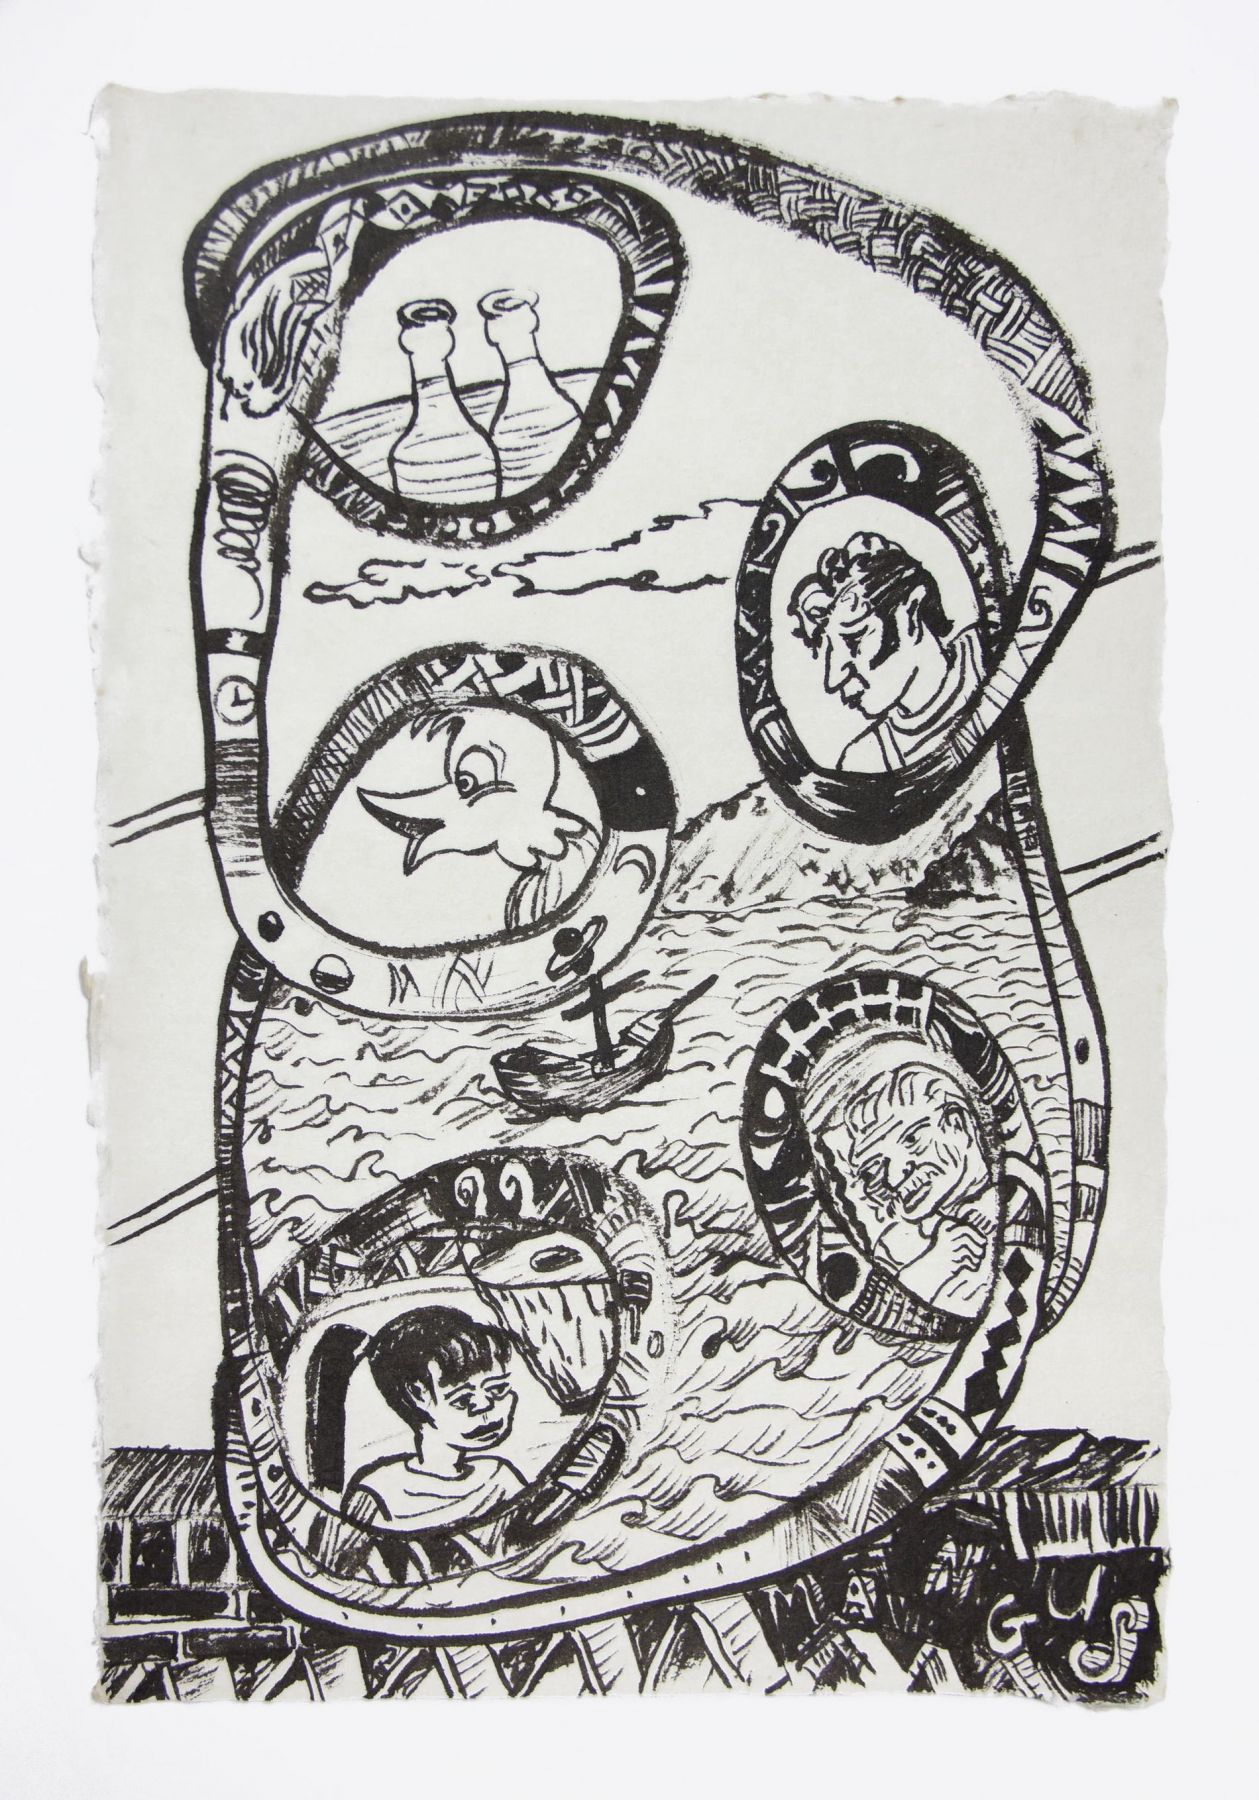 , Journey to Yelpa, 1999, Ink on mulberry paper, 17 x 12 1/2 in.